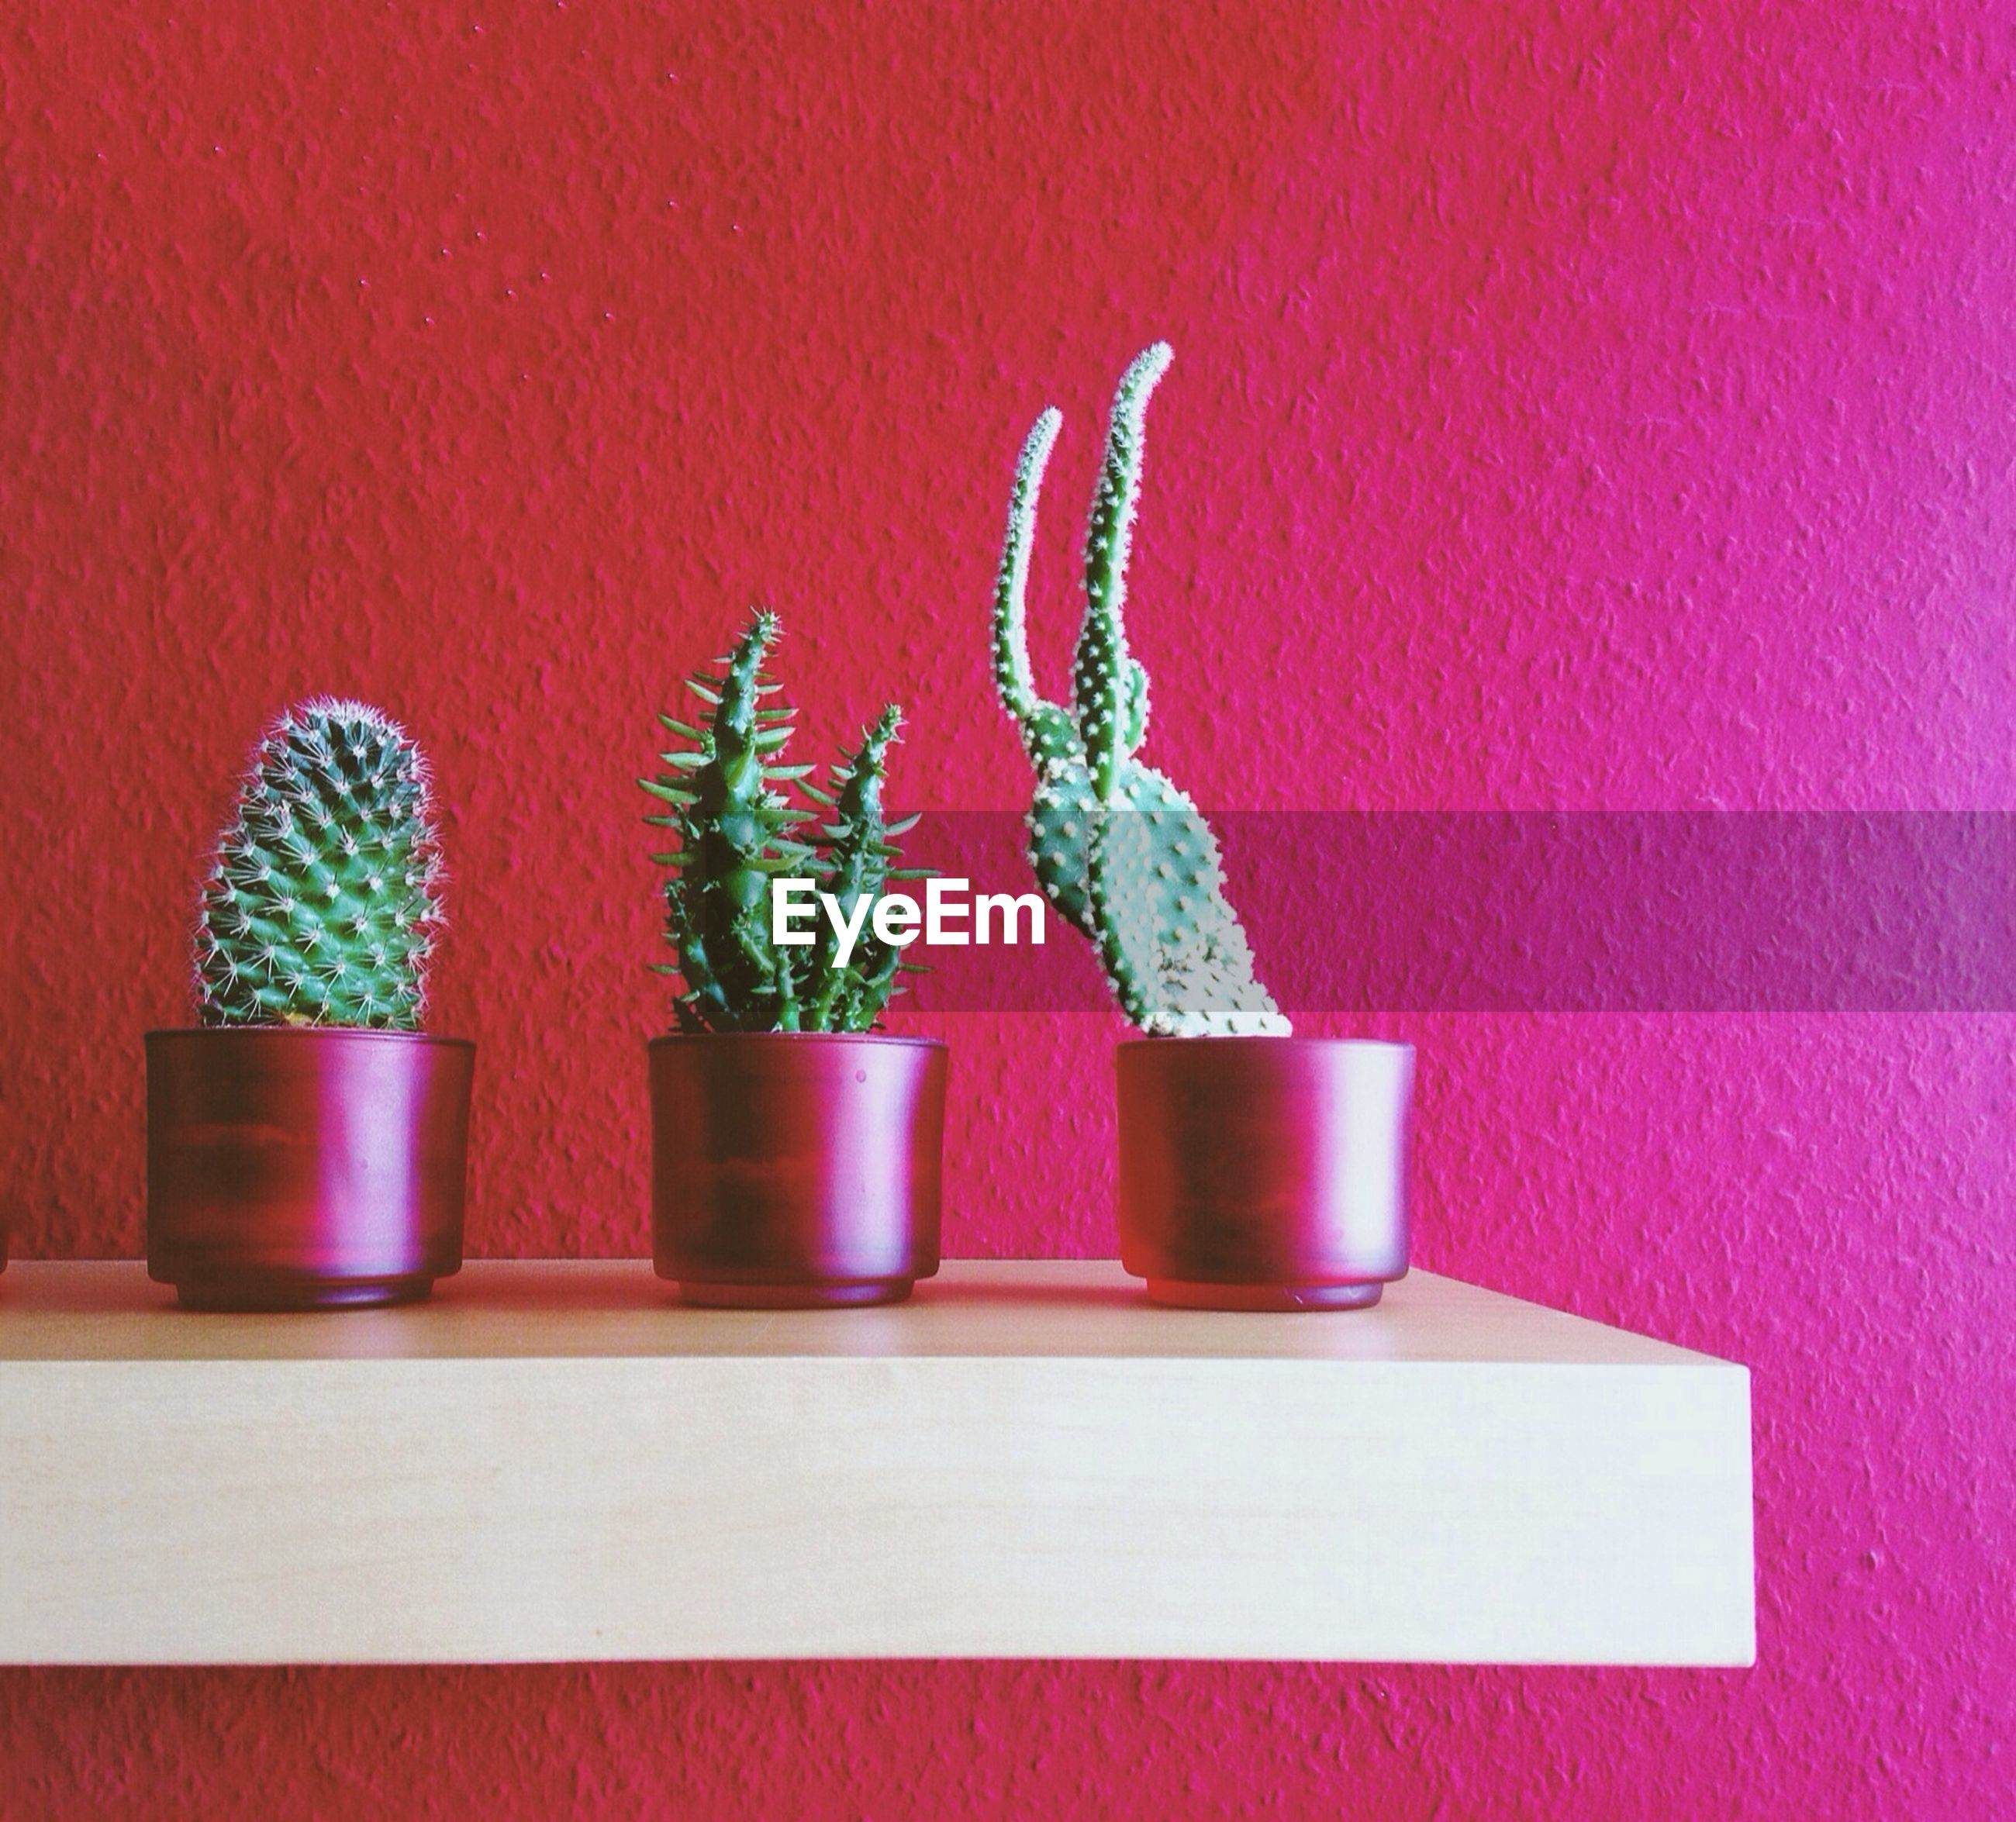 Cactus plant in pots on rack